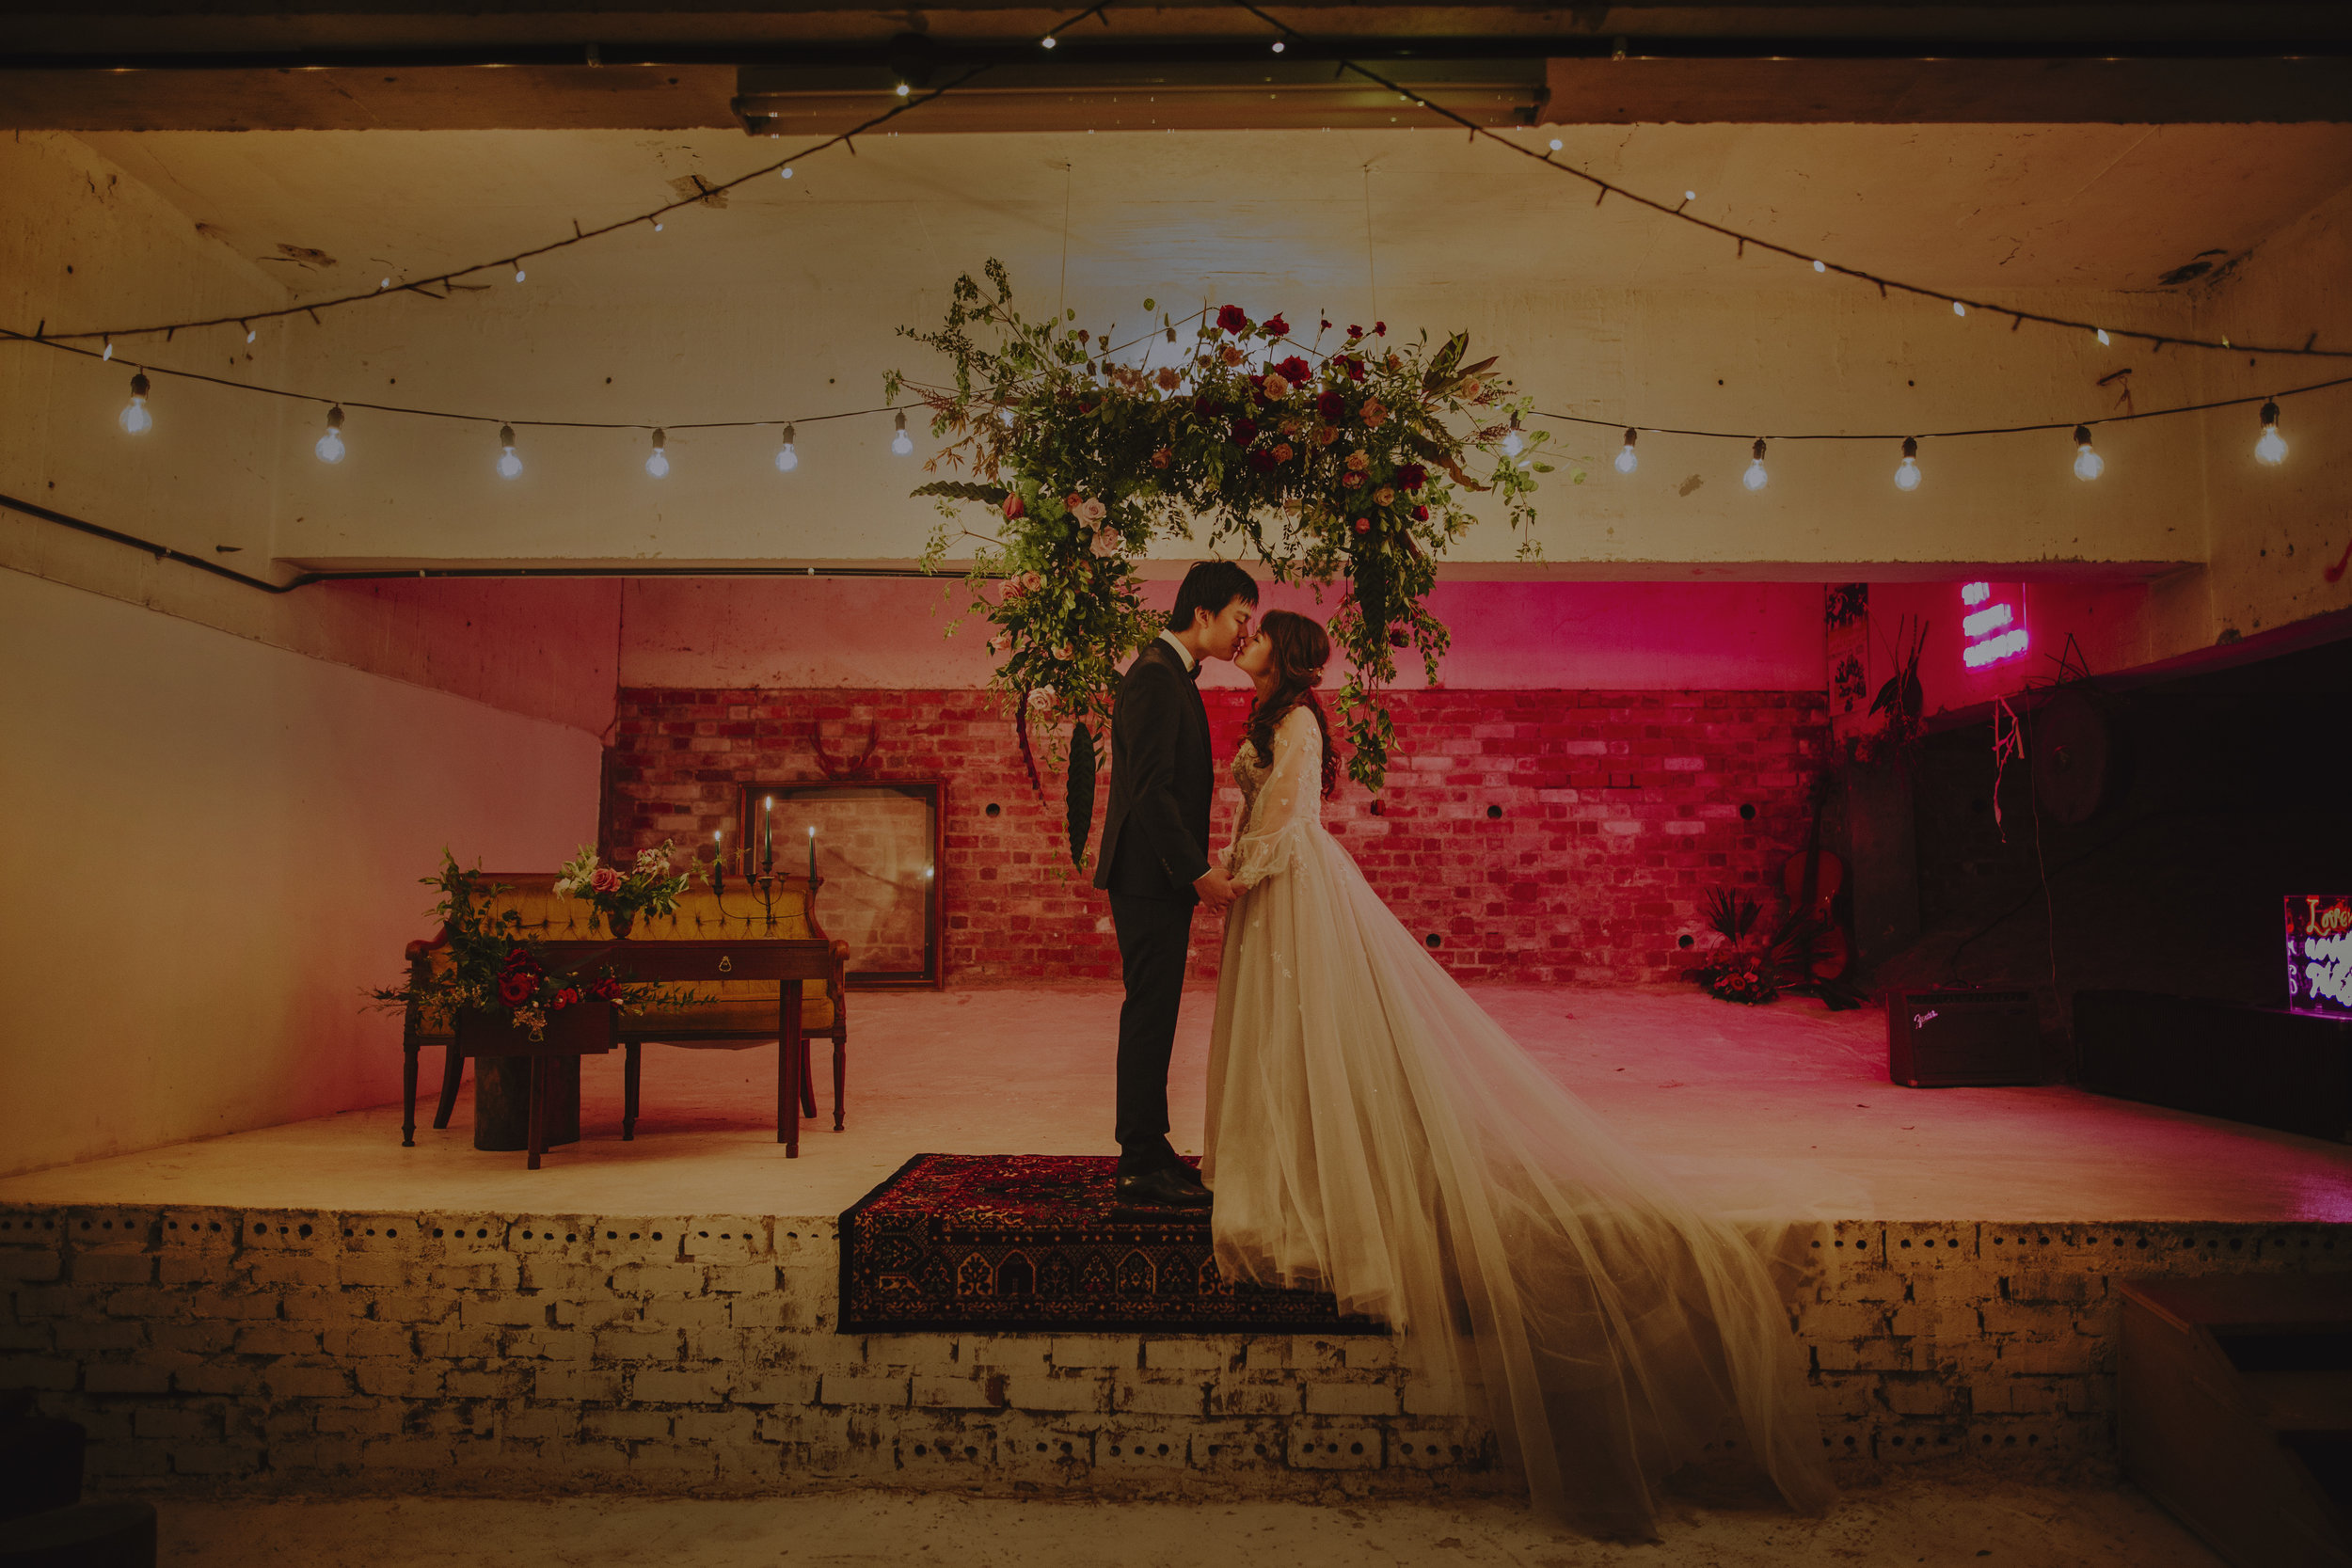 Styled Shoots The Kave HQ - Photo Credit: AndroidsinBoots